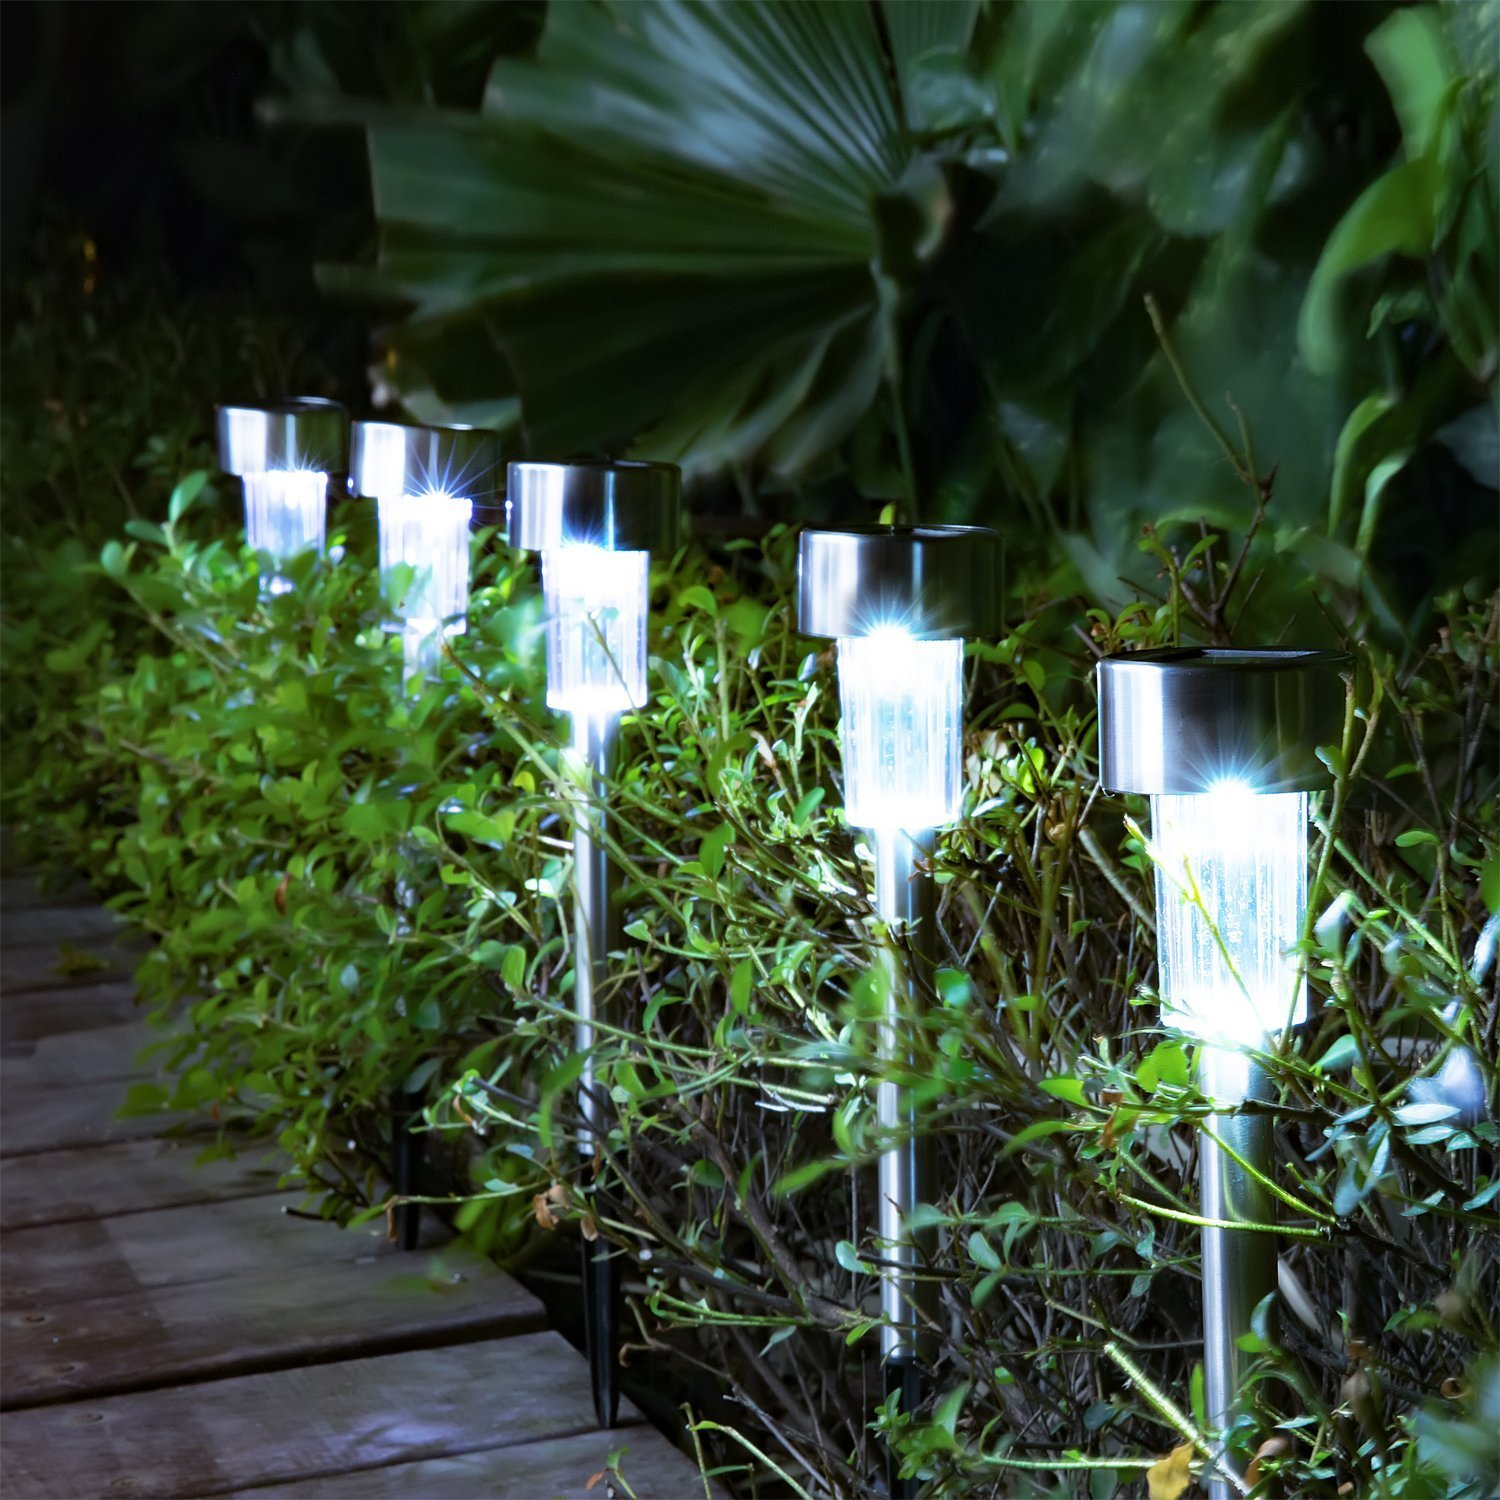 Solar Pathway Lights [16pack] - Waterproof Outdoor Garden Sunlight Powered Lights - Bright White - Landscape Light for Lawn/Patio/Yard/Walkway/Driveway (Stainless Steel) by Steelar (Image #5)